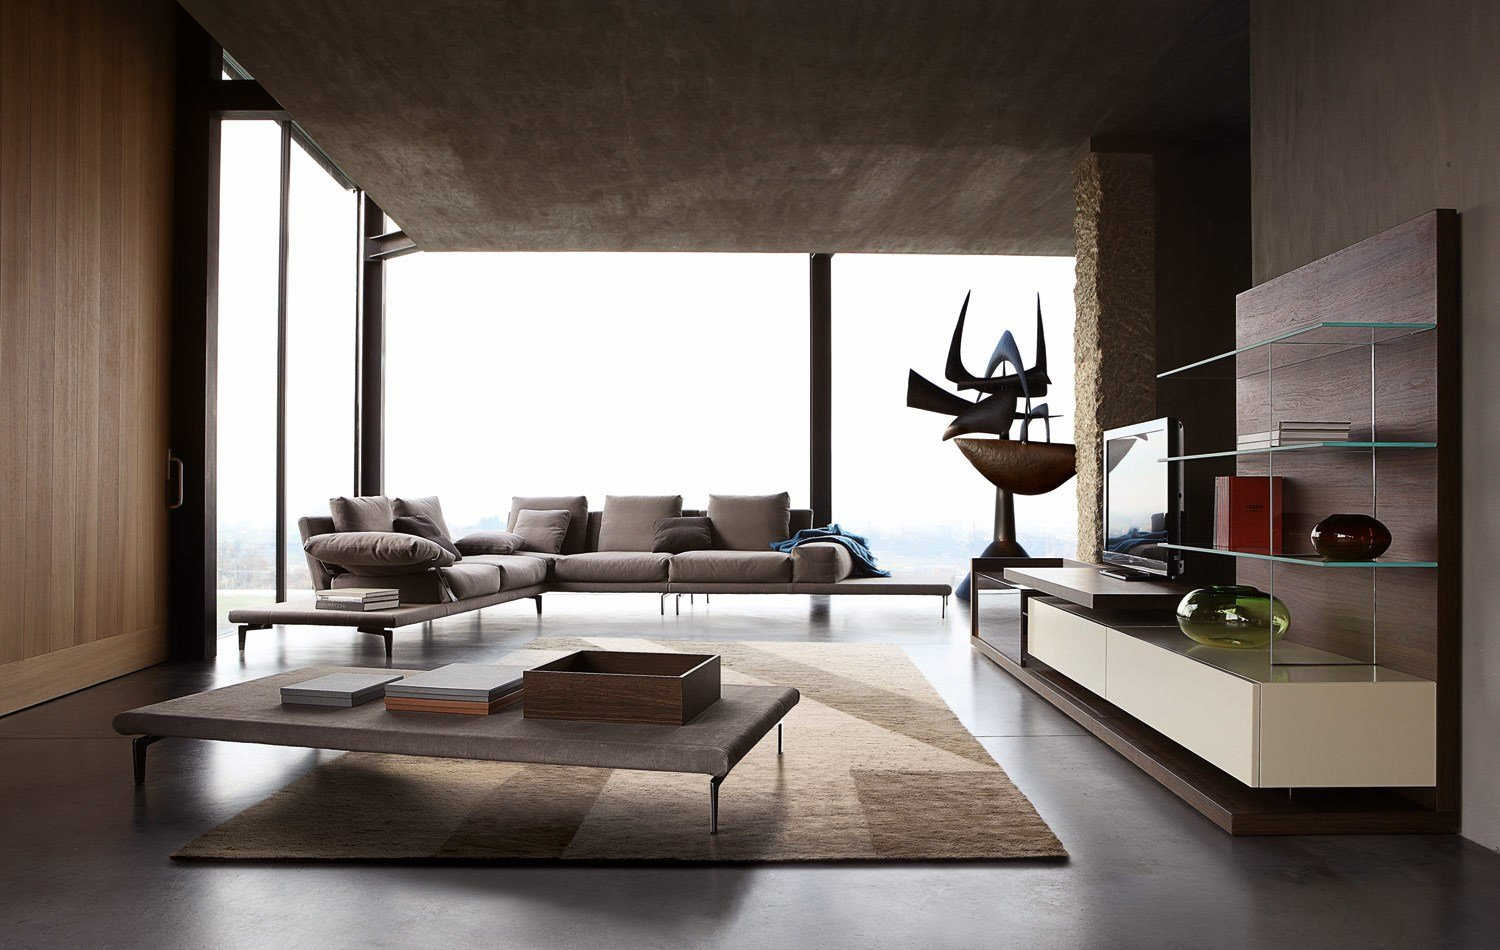 Sectional modular sofa ECHOES by ROCHE BOBOIS design Mauro